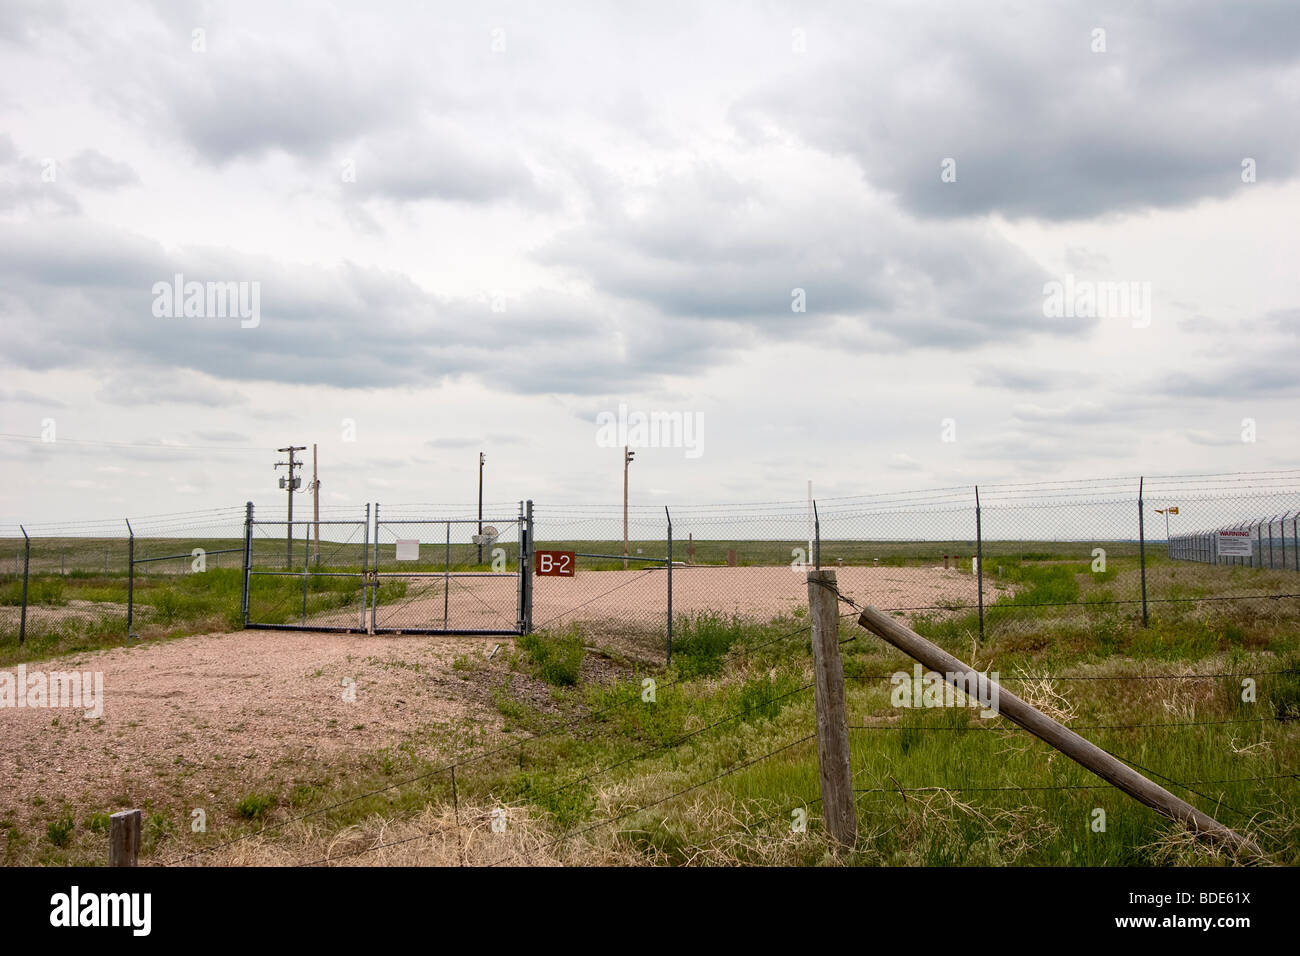 The entrance to a Minuteman 2 nuclear missile silo in Kimball, Nebraska, June 5, 2009. - Stock Image